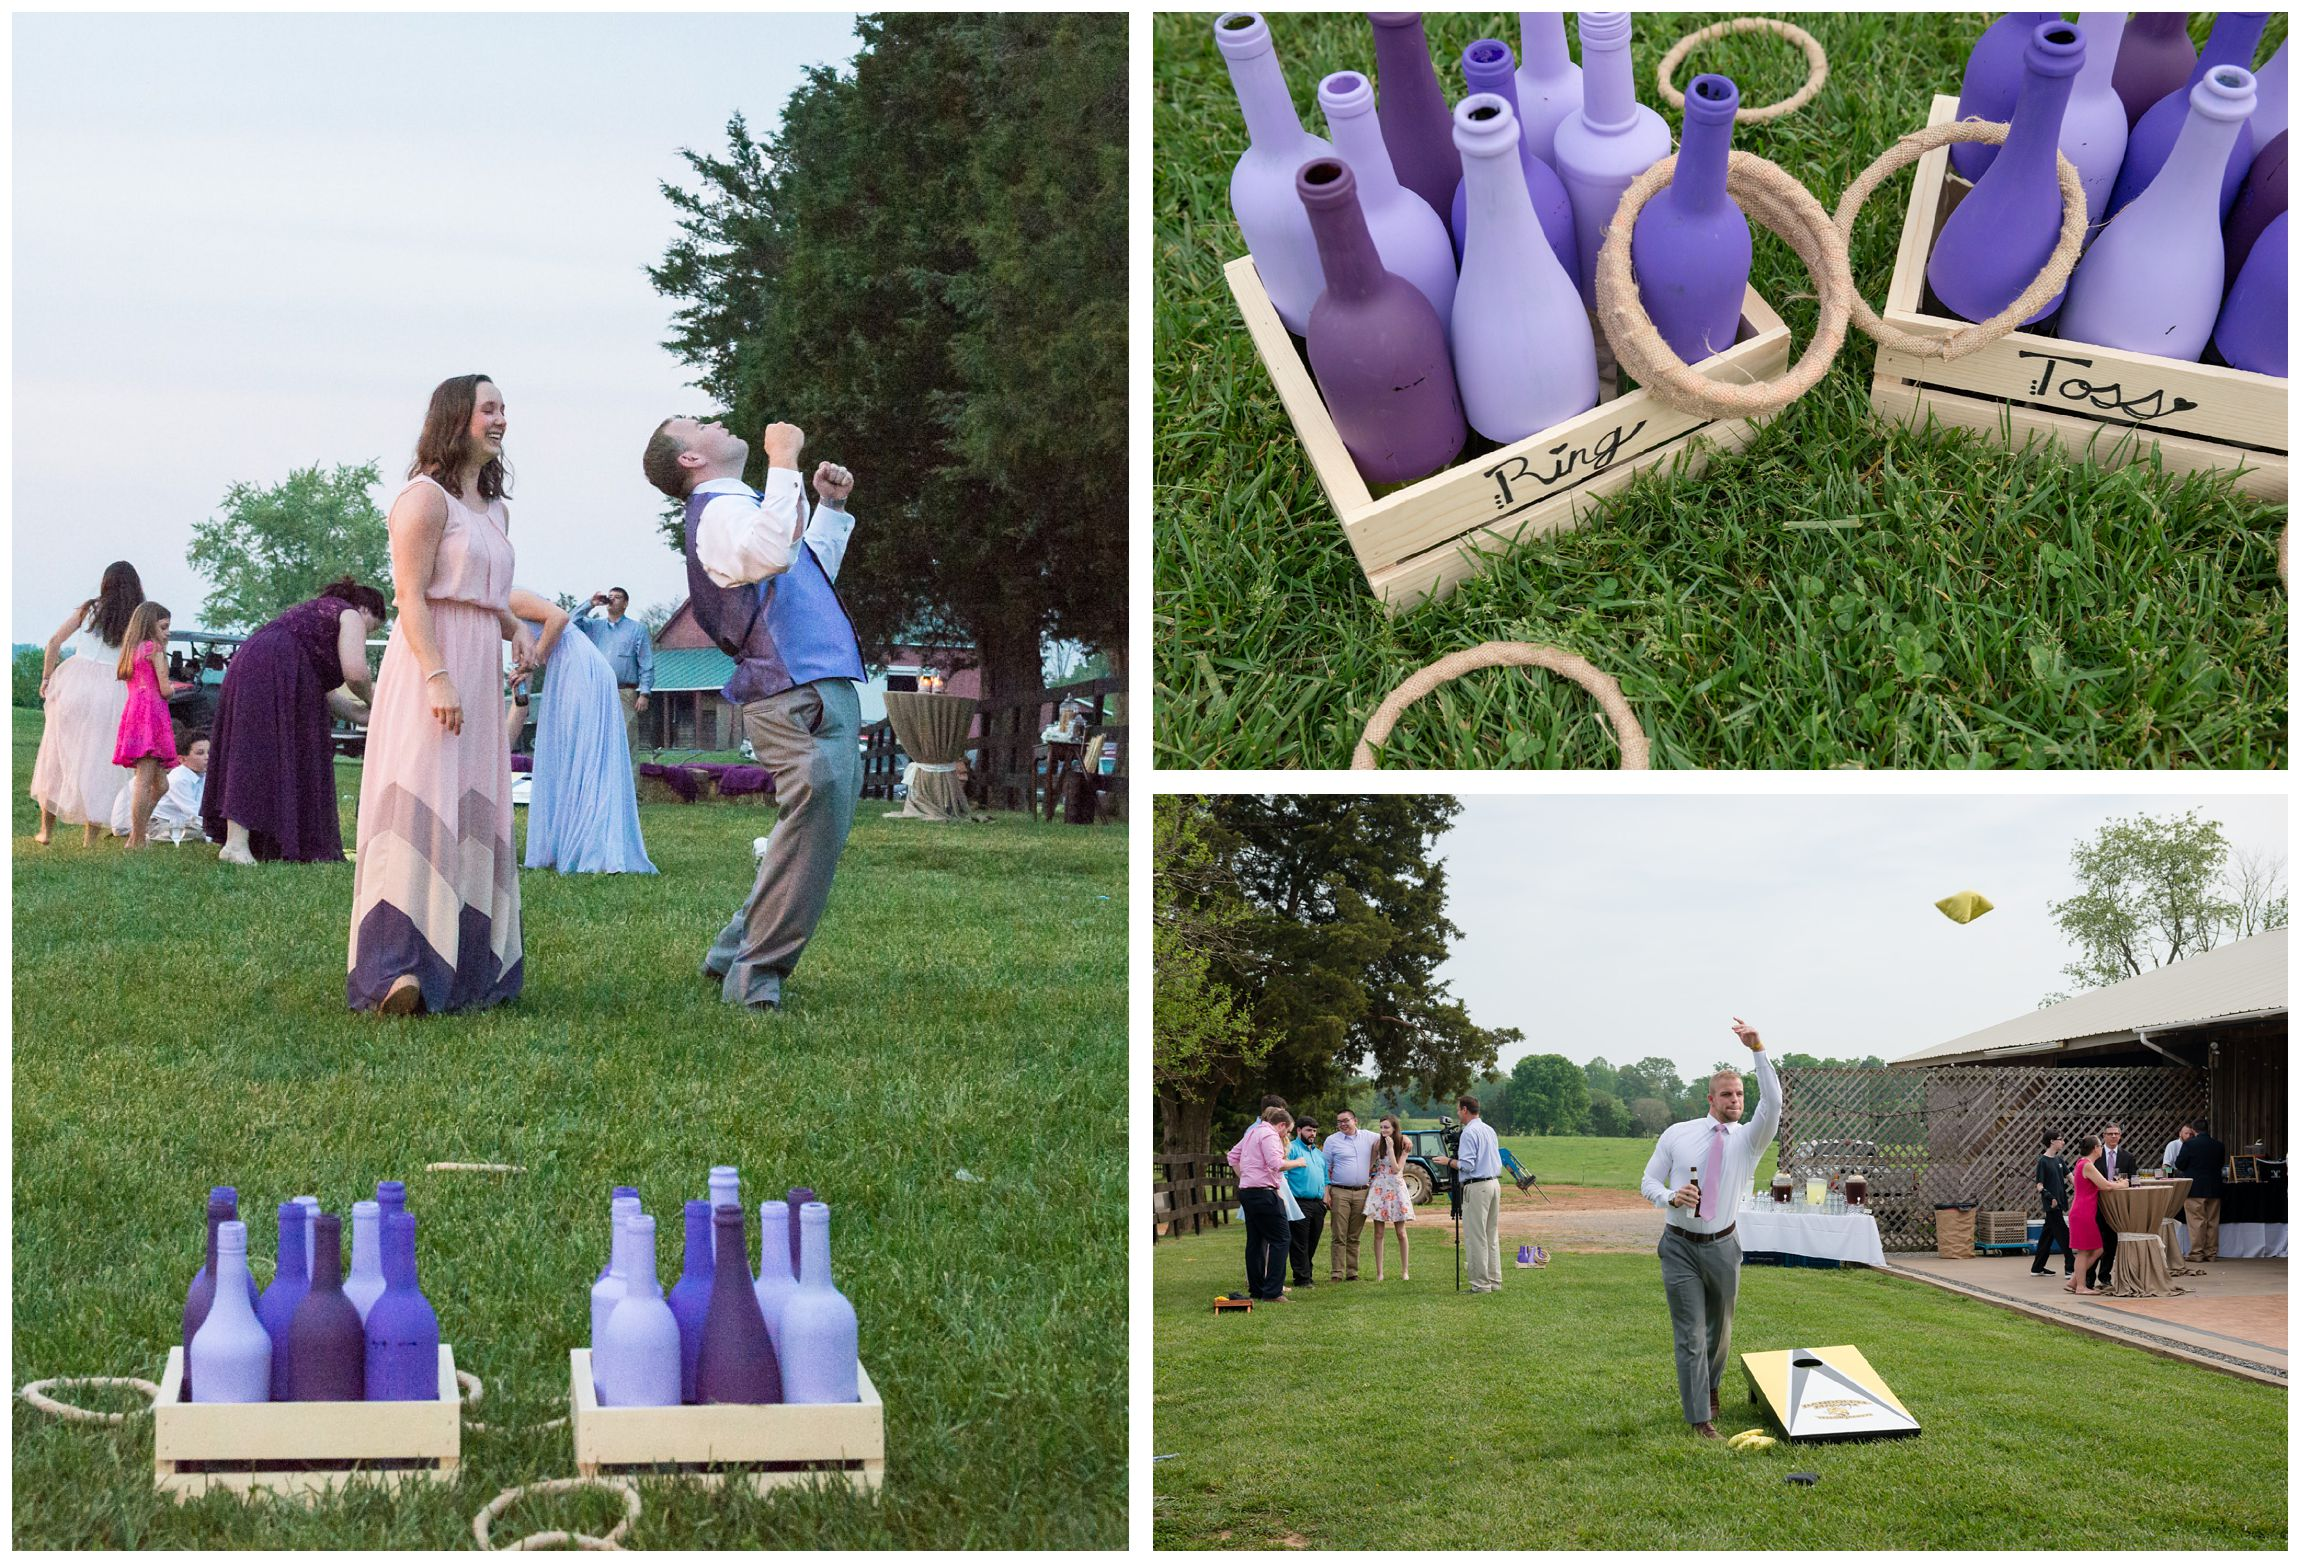 yard games and cornhole during farm wedding reception